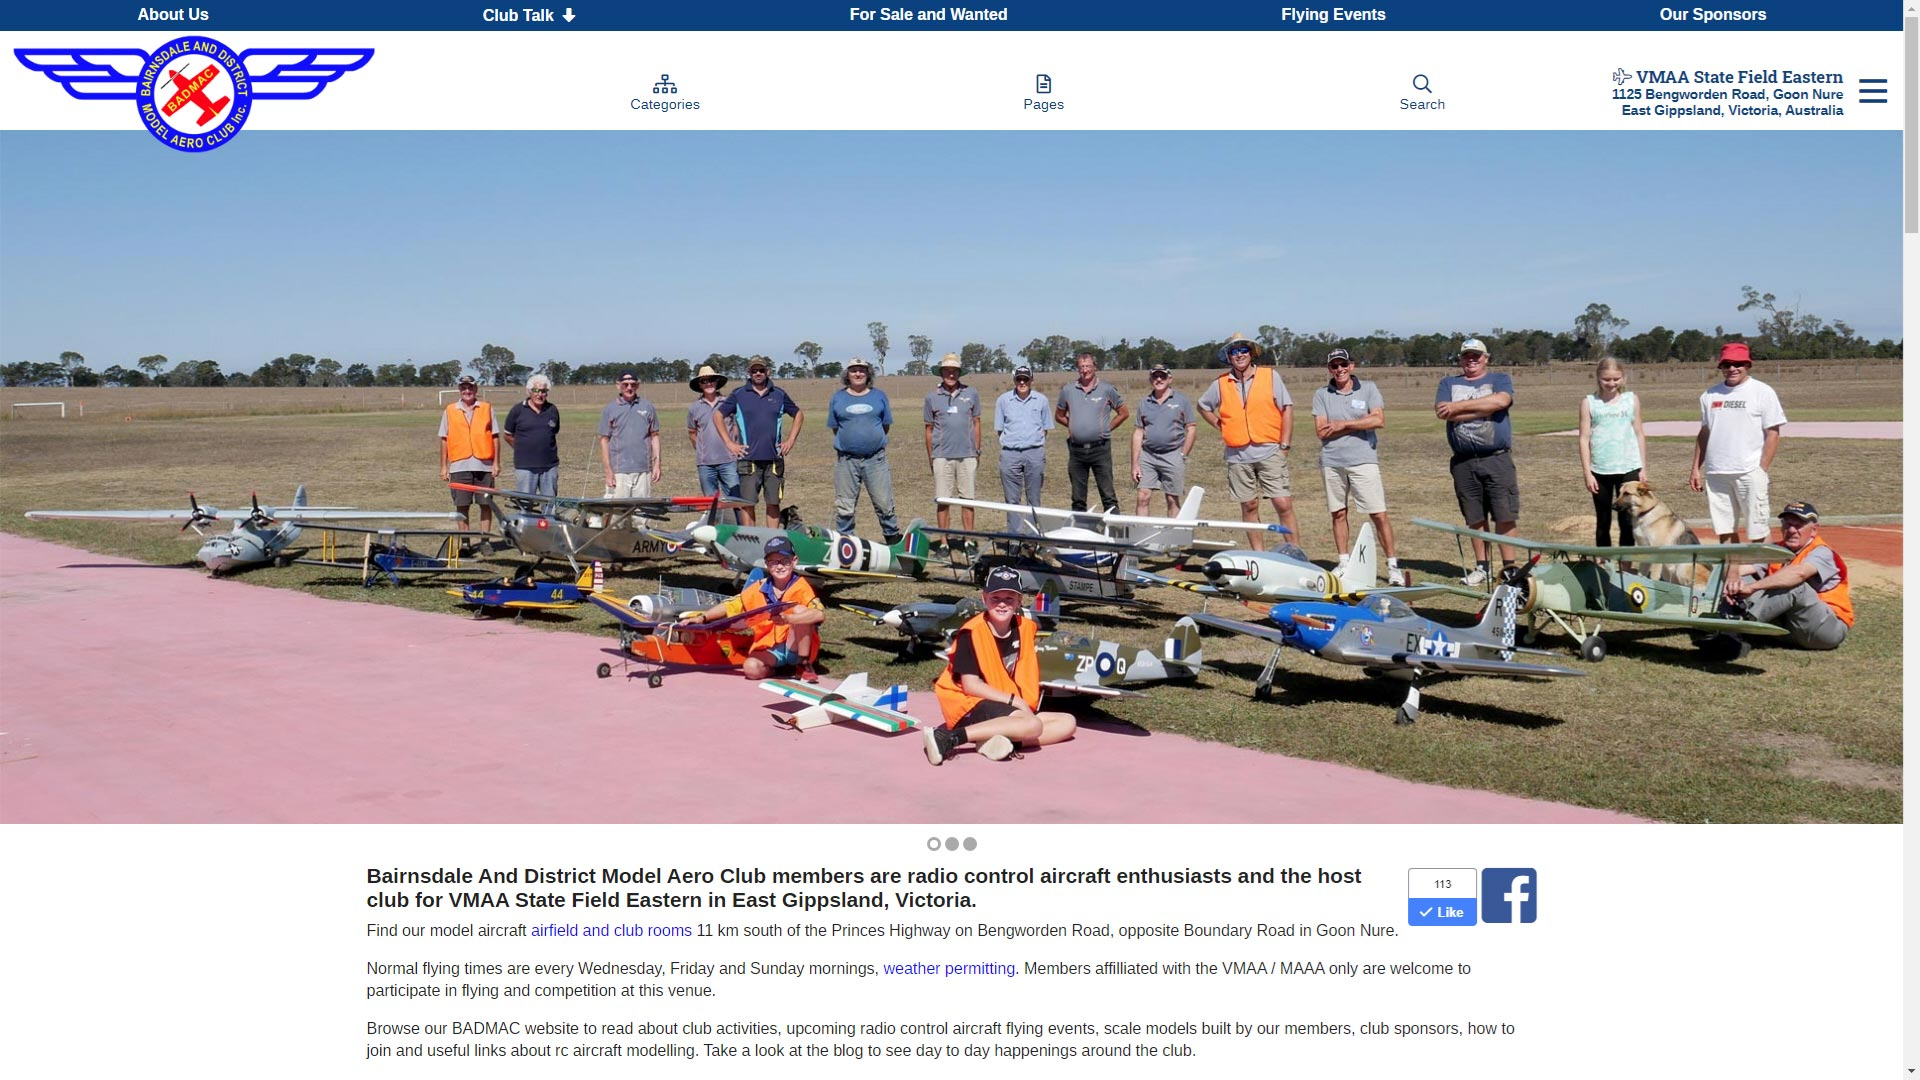 Bairnsdale And District Model Aero Club